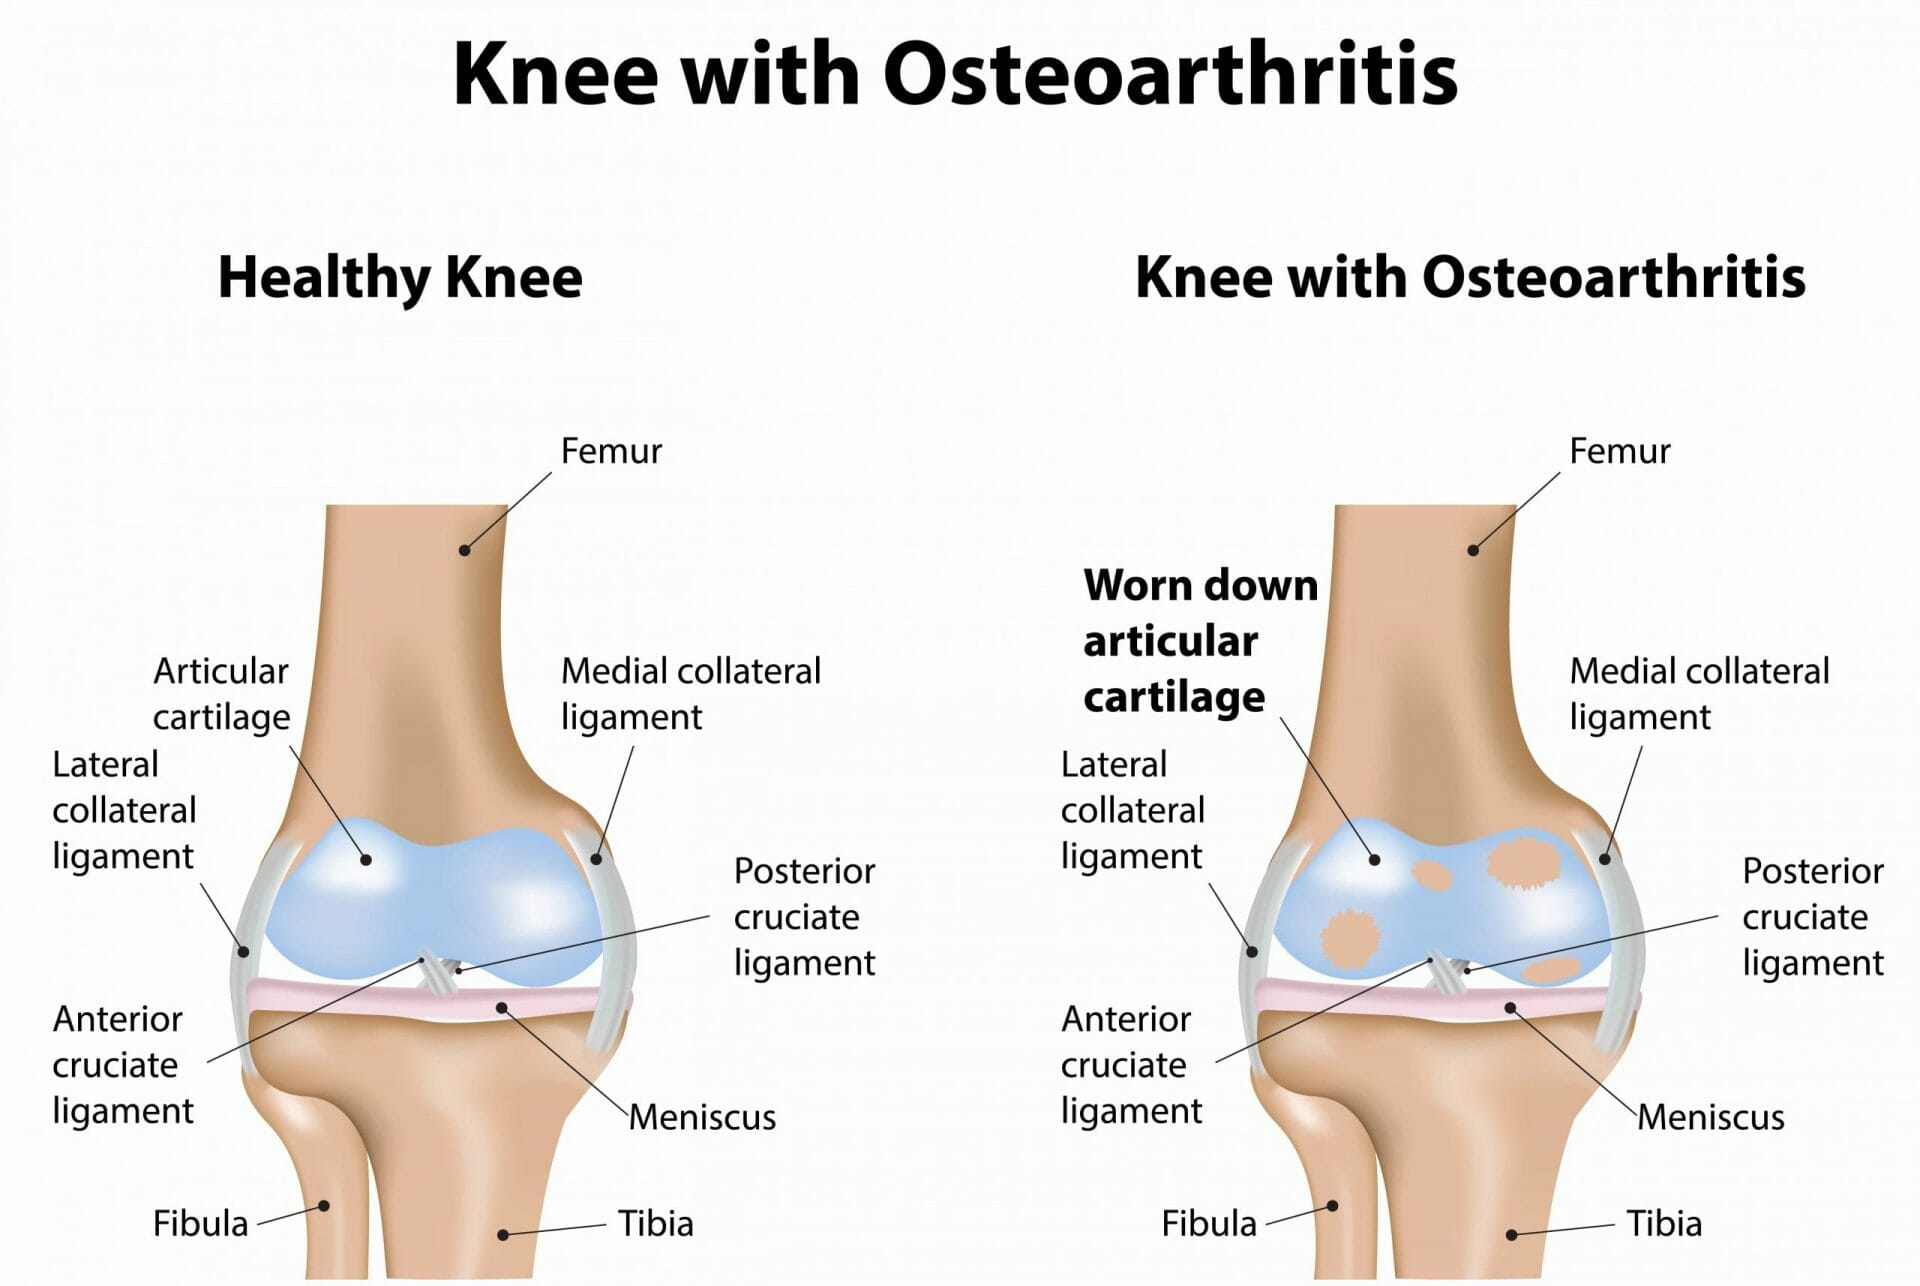 Comparison of healthy knee and knee with osteoarthritis